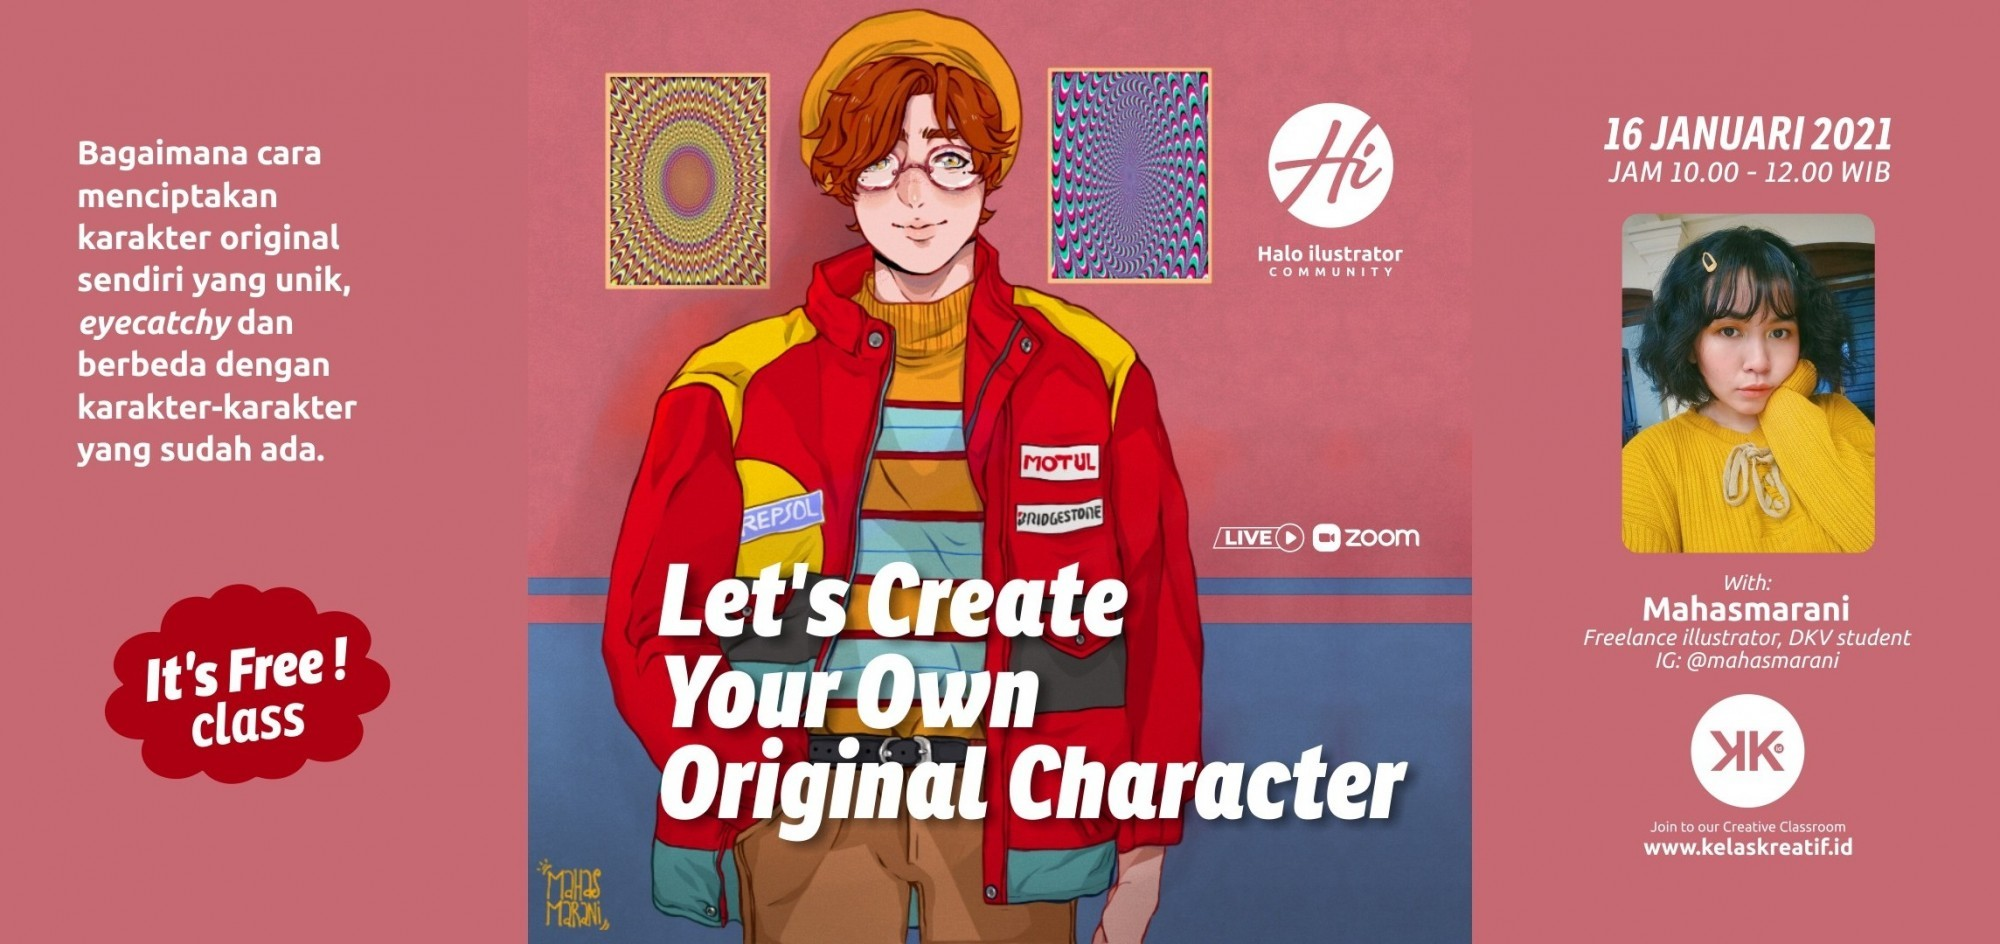 (Free Class) Let's Create Your Own Original Character